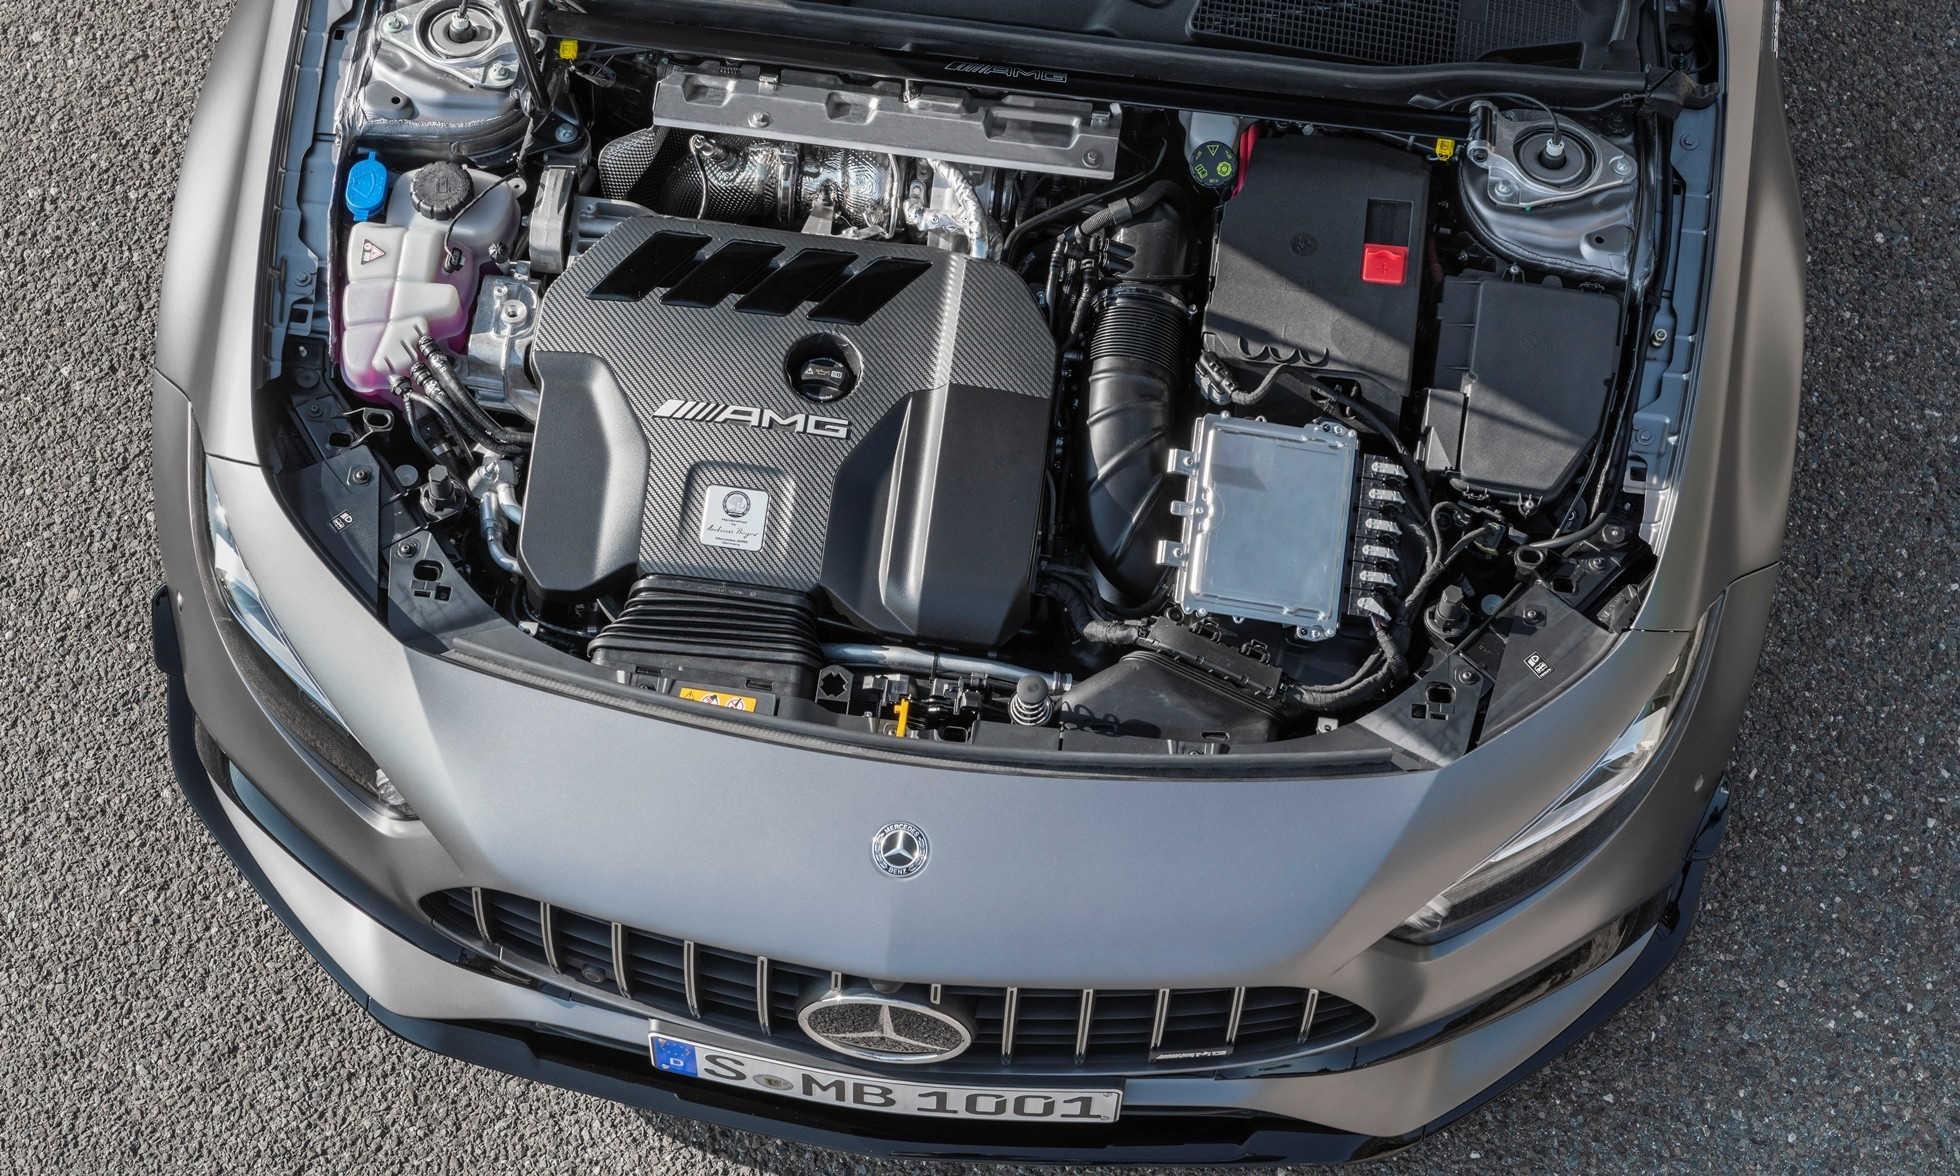 New Mercedes-AMG A45S engine